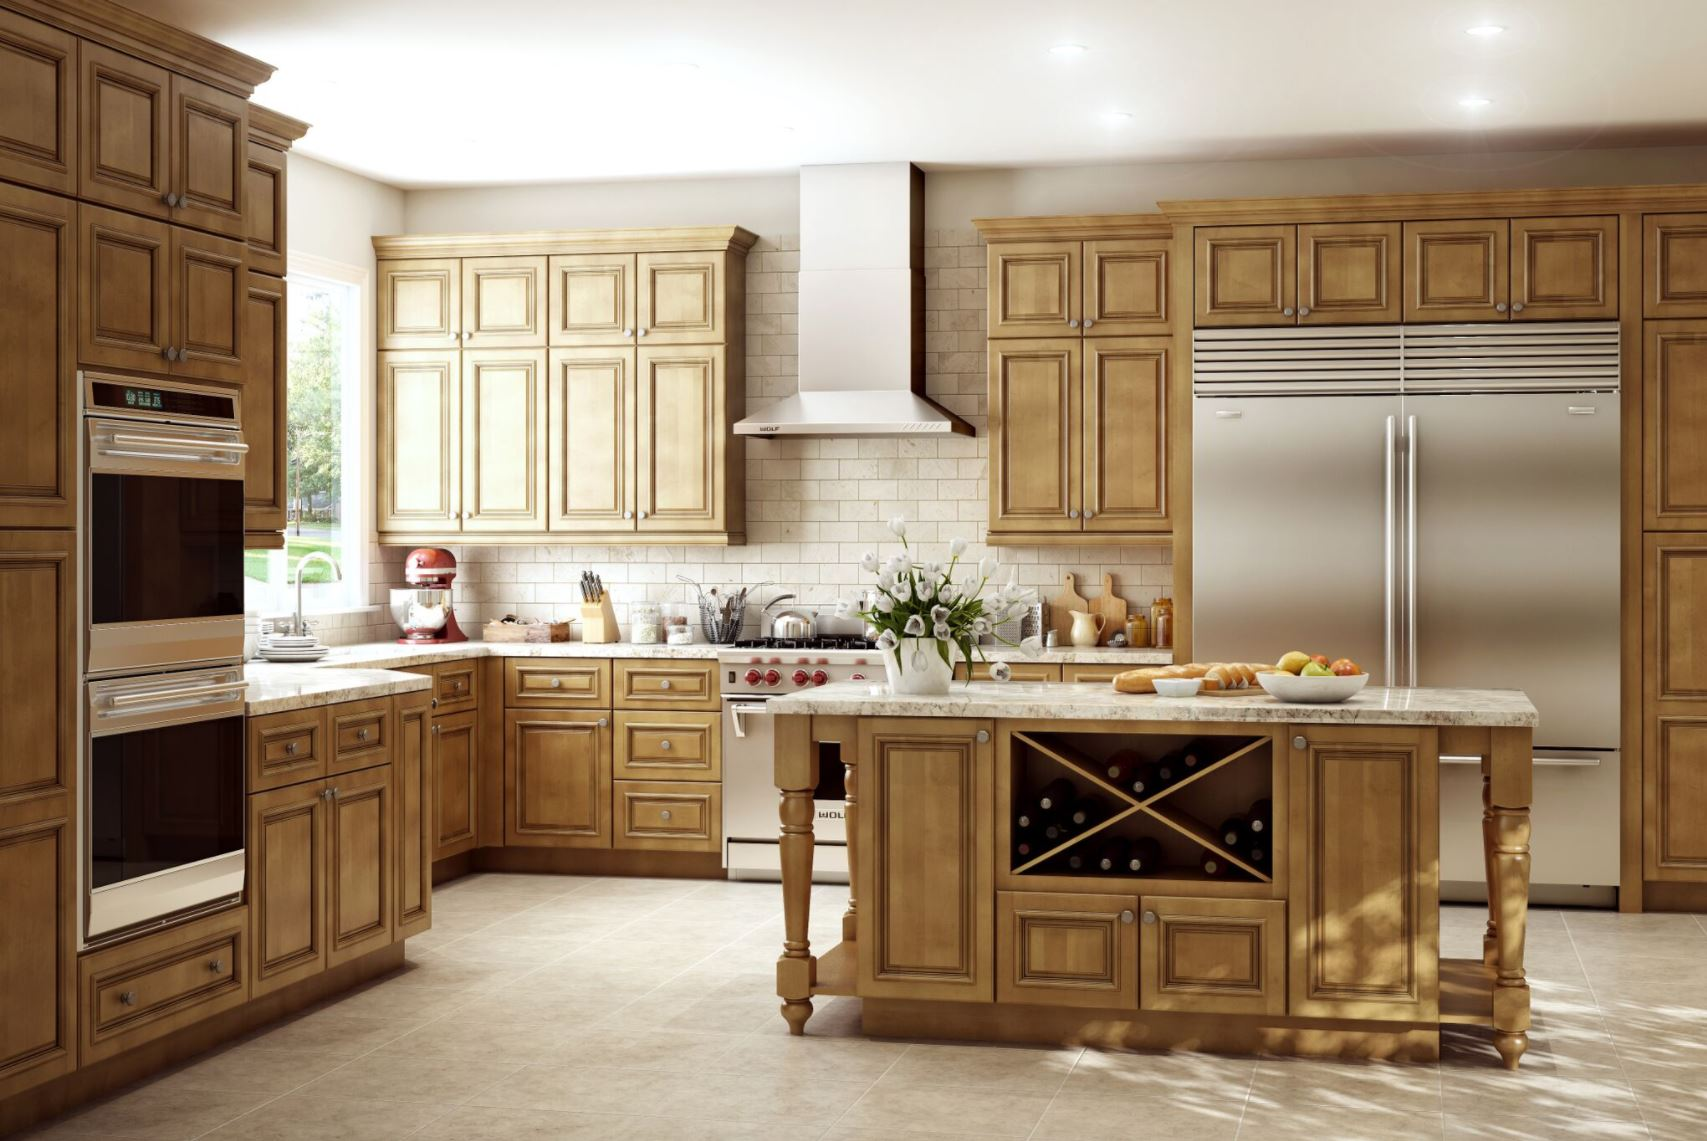 Clevedon Base Cabinets in Toffee Glaze – Kitchen – The Home ...